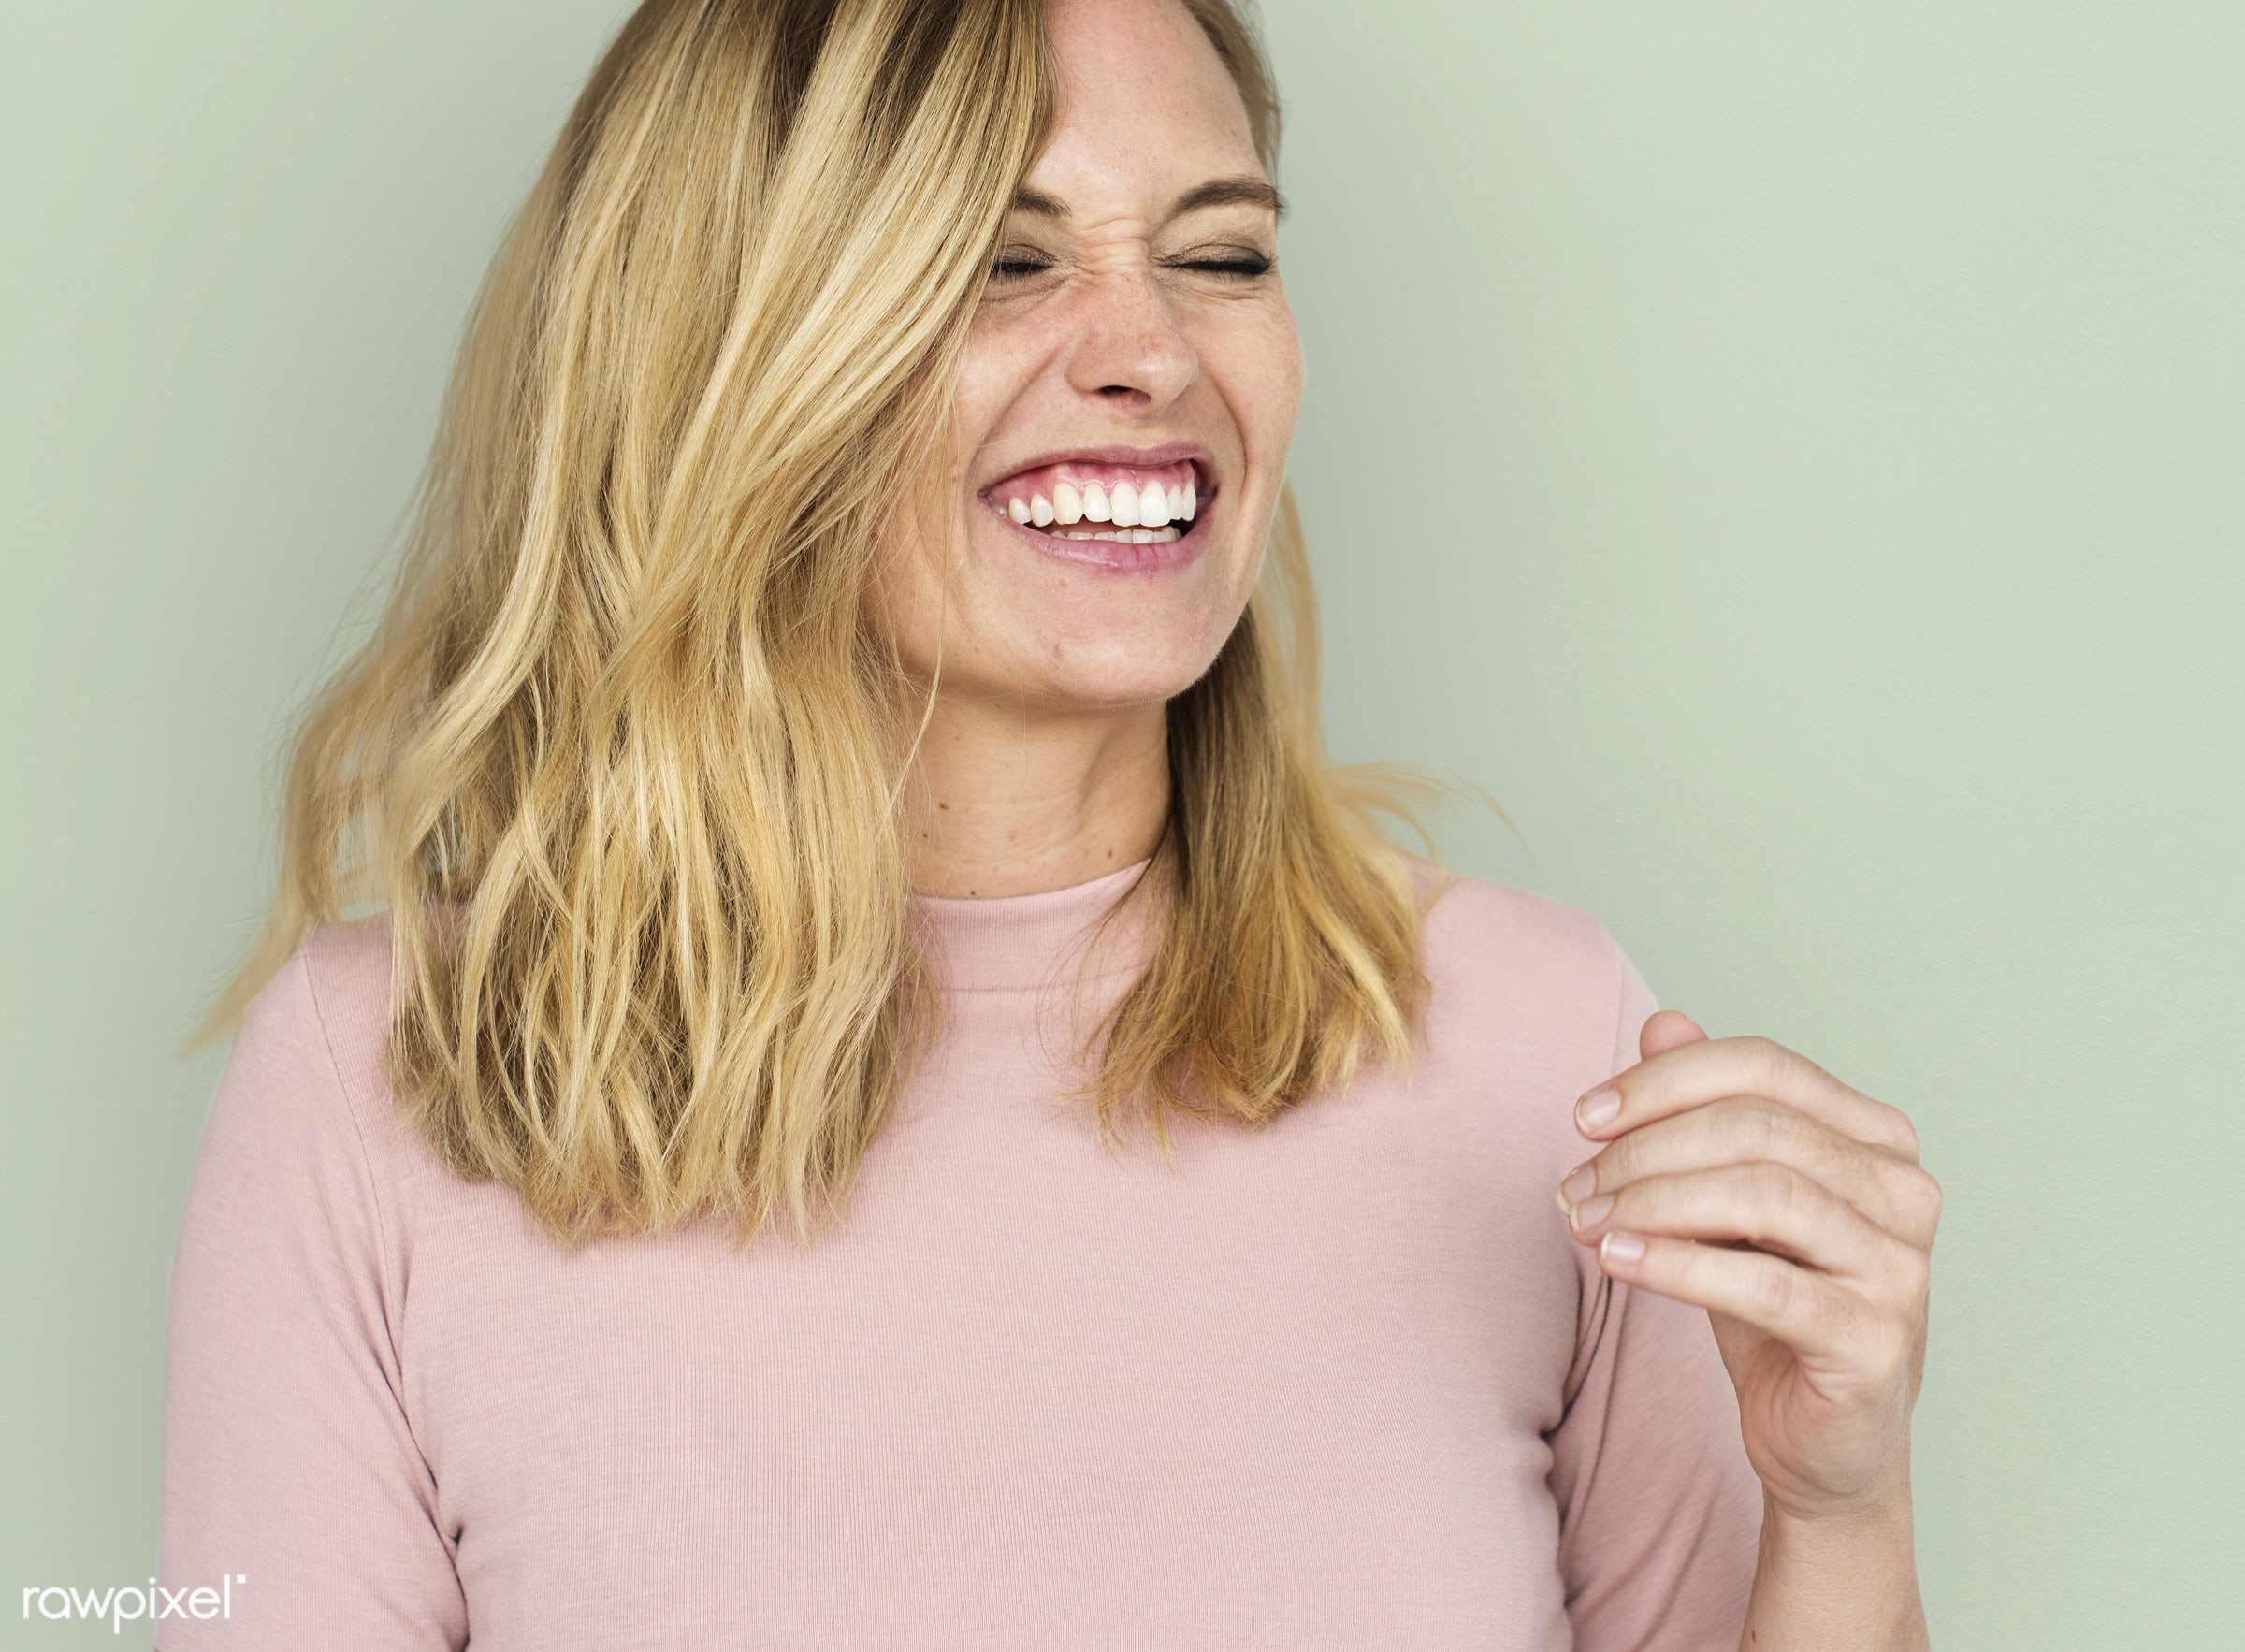 studio, expression, person, model, freedom, relax, optimistic, people, caucasian, laughing, woman, casual, lifestyle,...